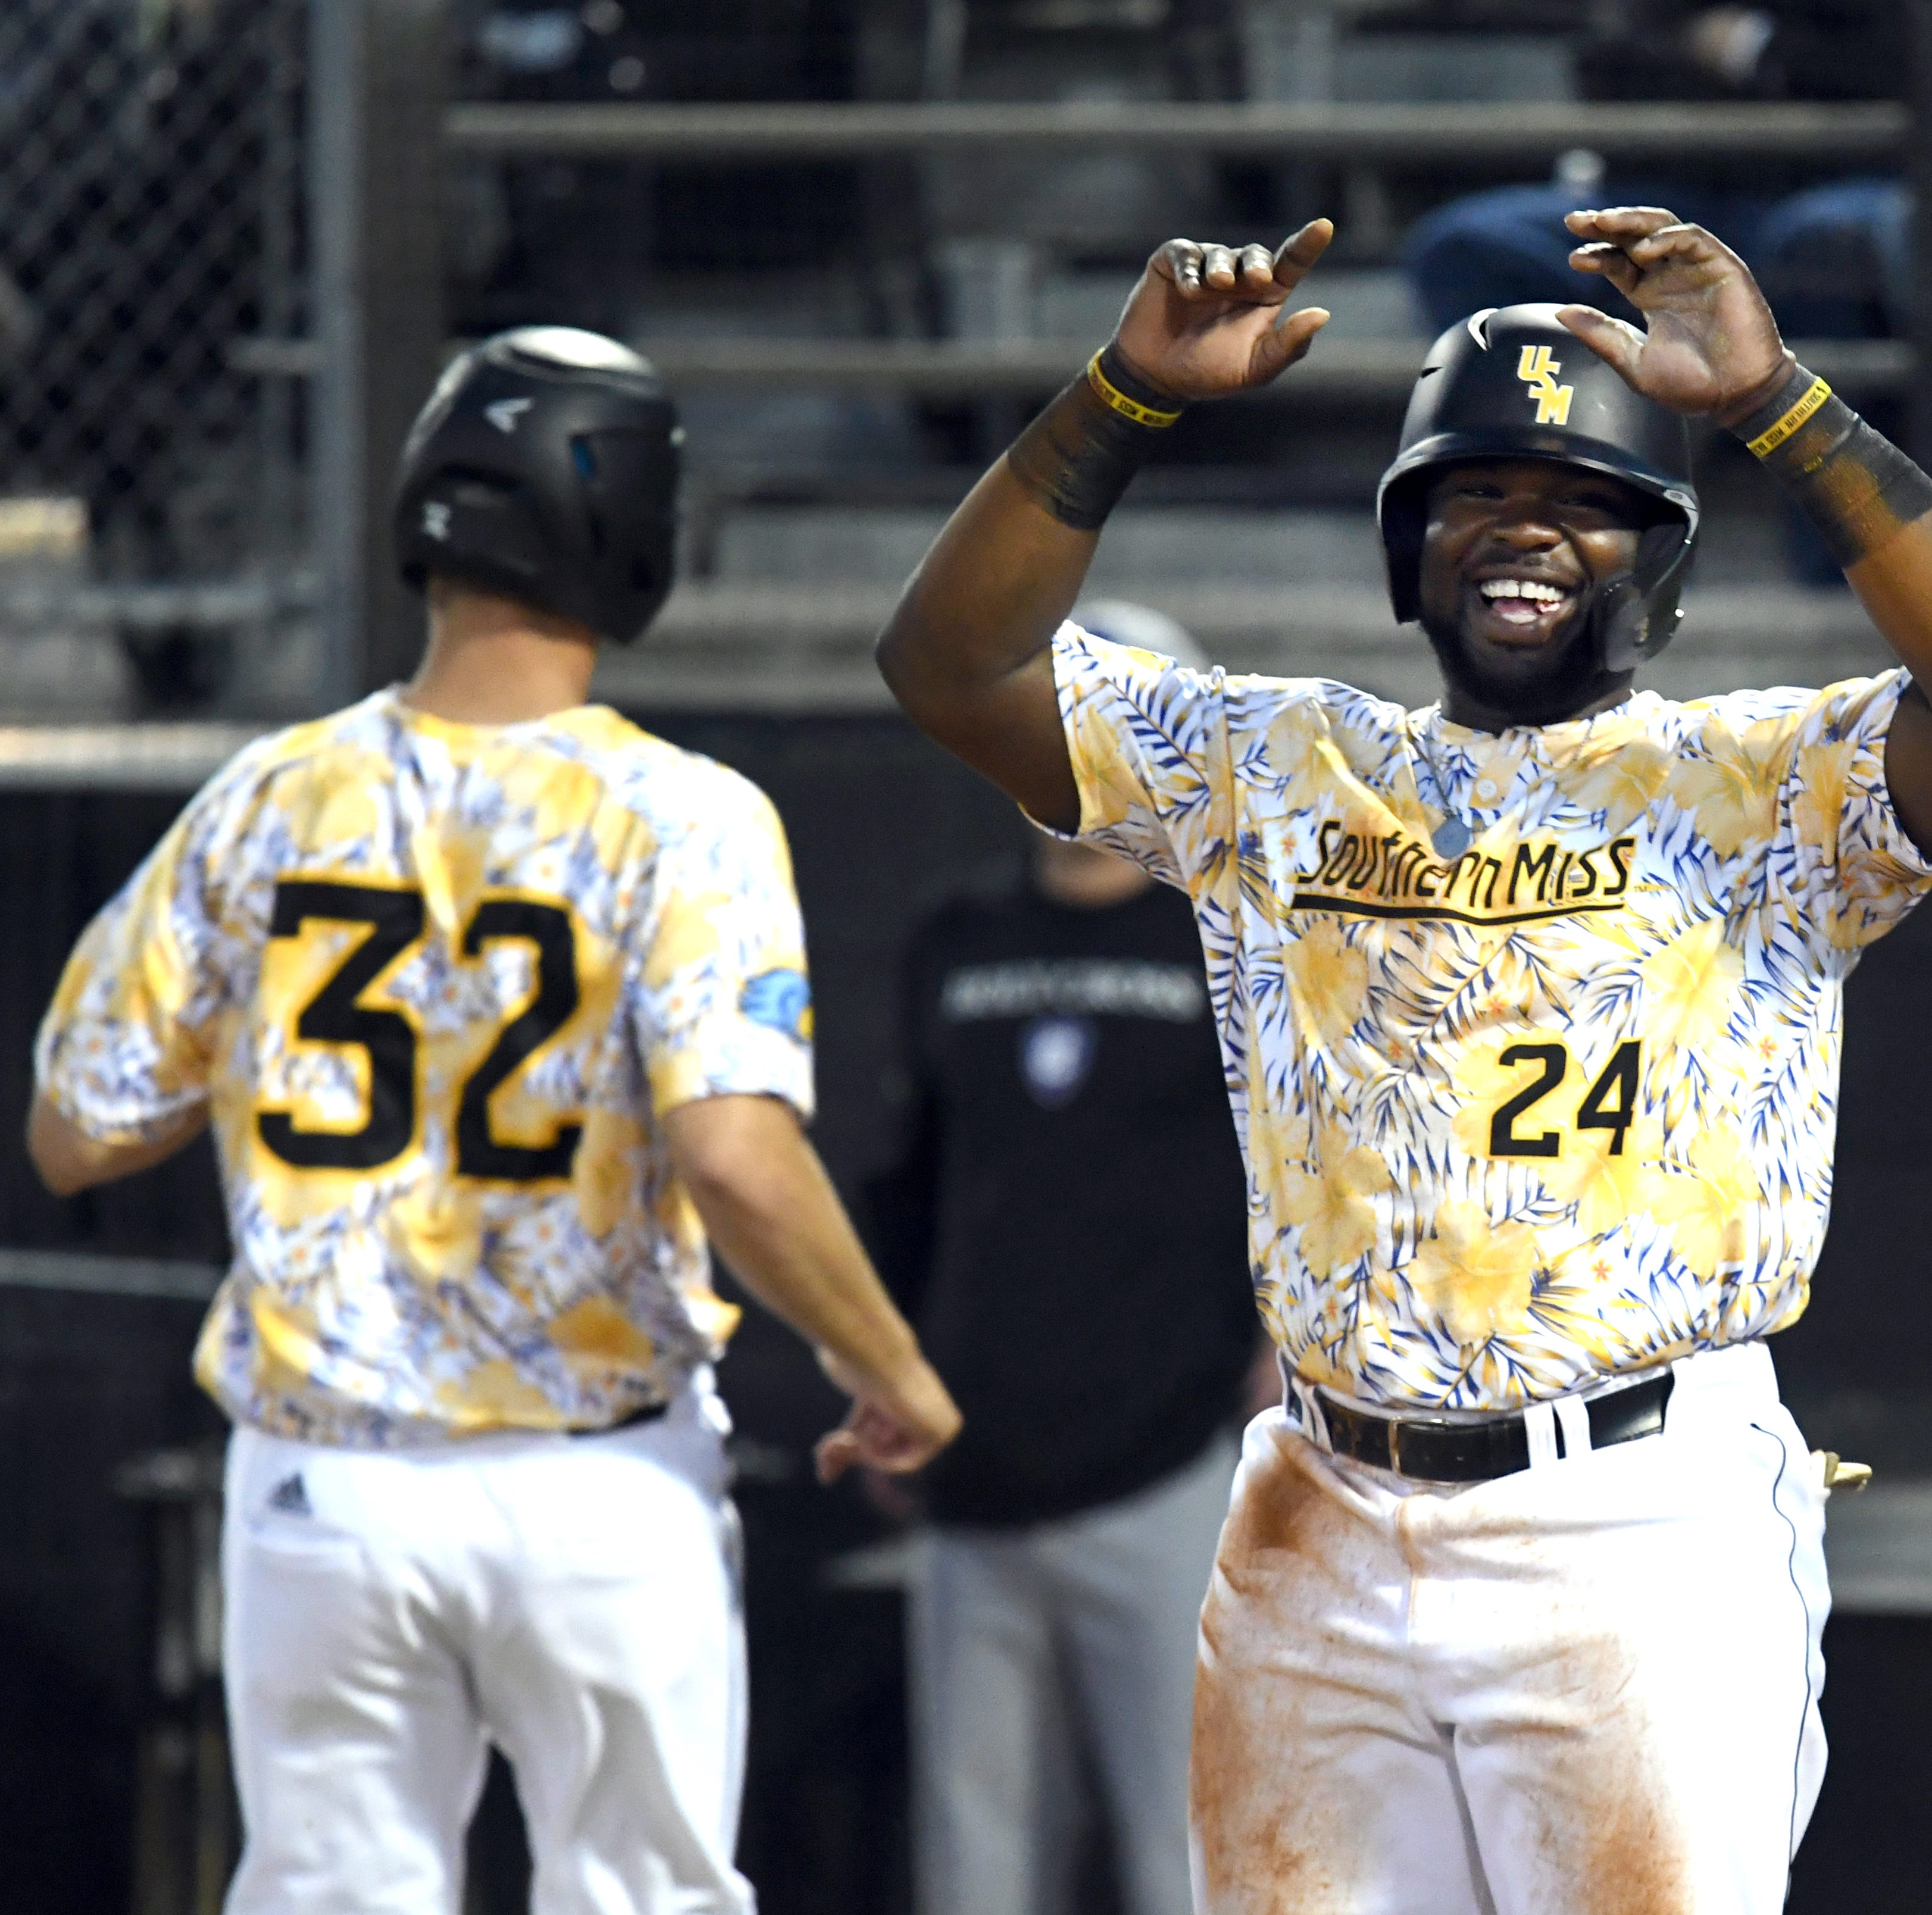 USM's bats have awoken, but there's still work to be done, Scott Berry says